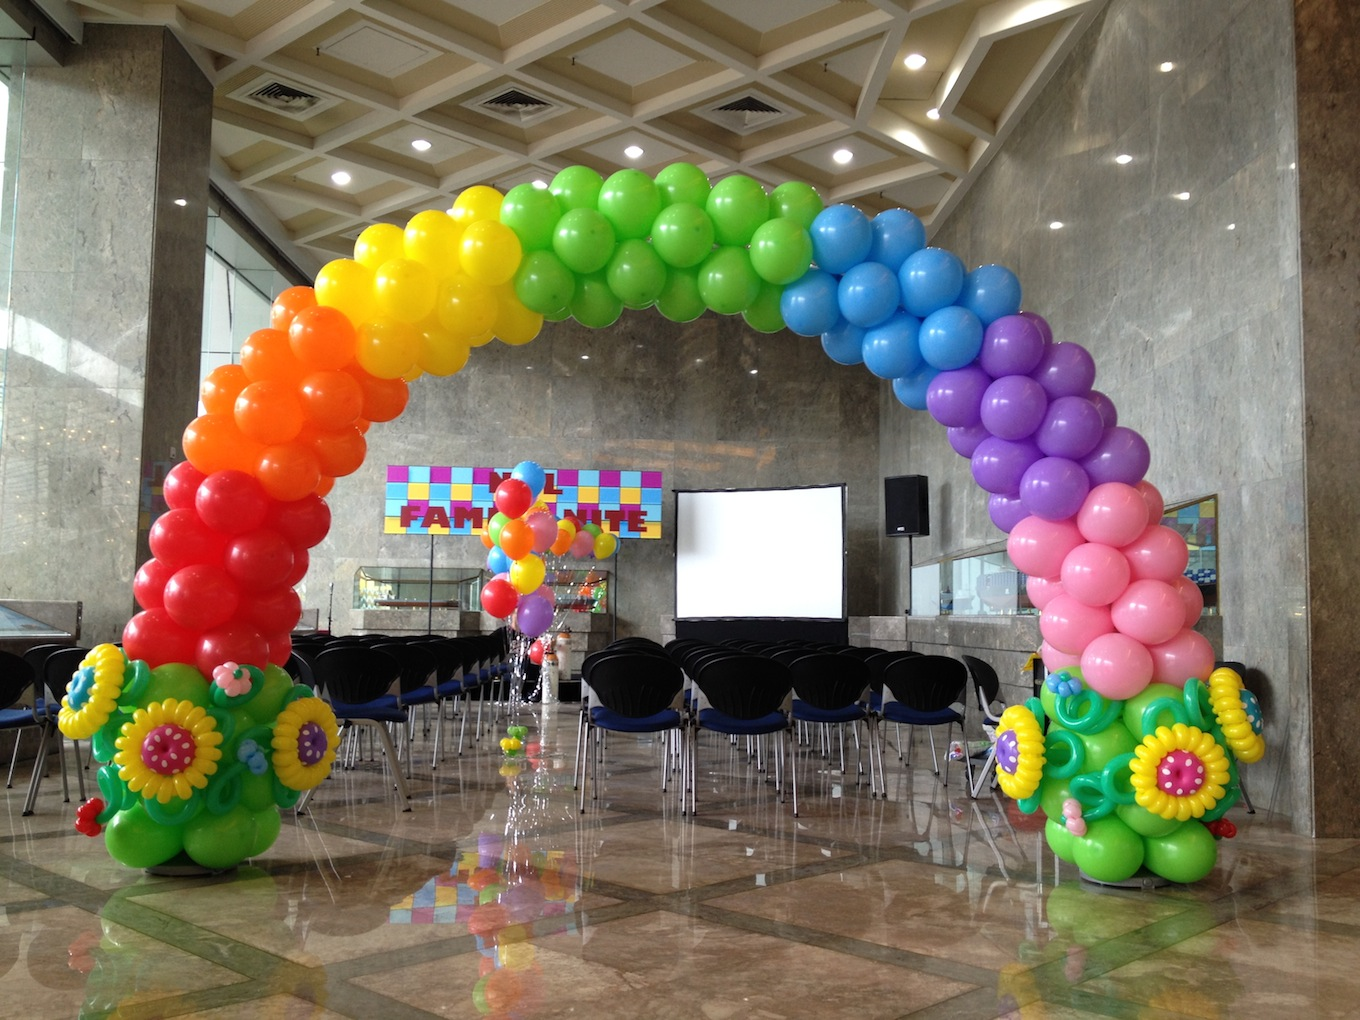 Balloon tunnel that balloons for Arch balloons decoration